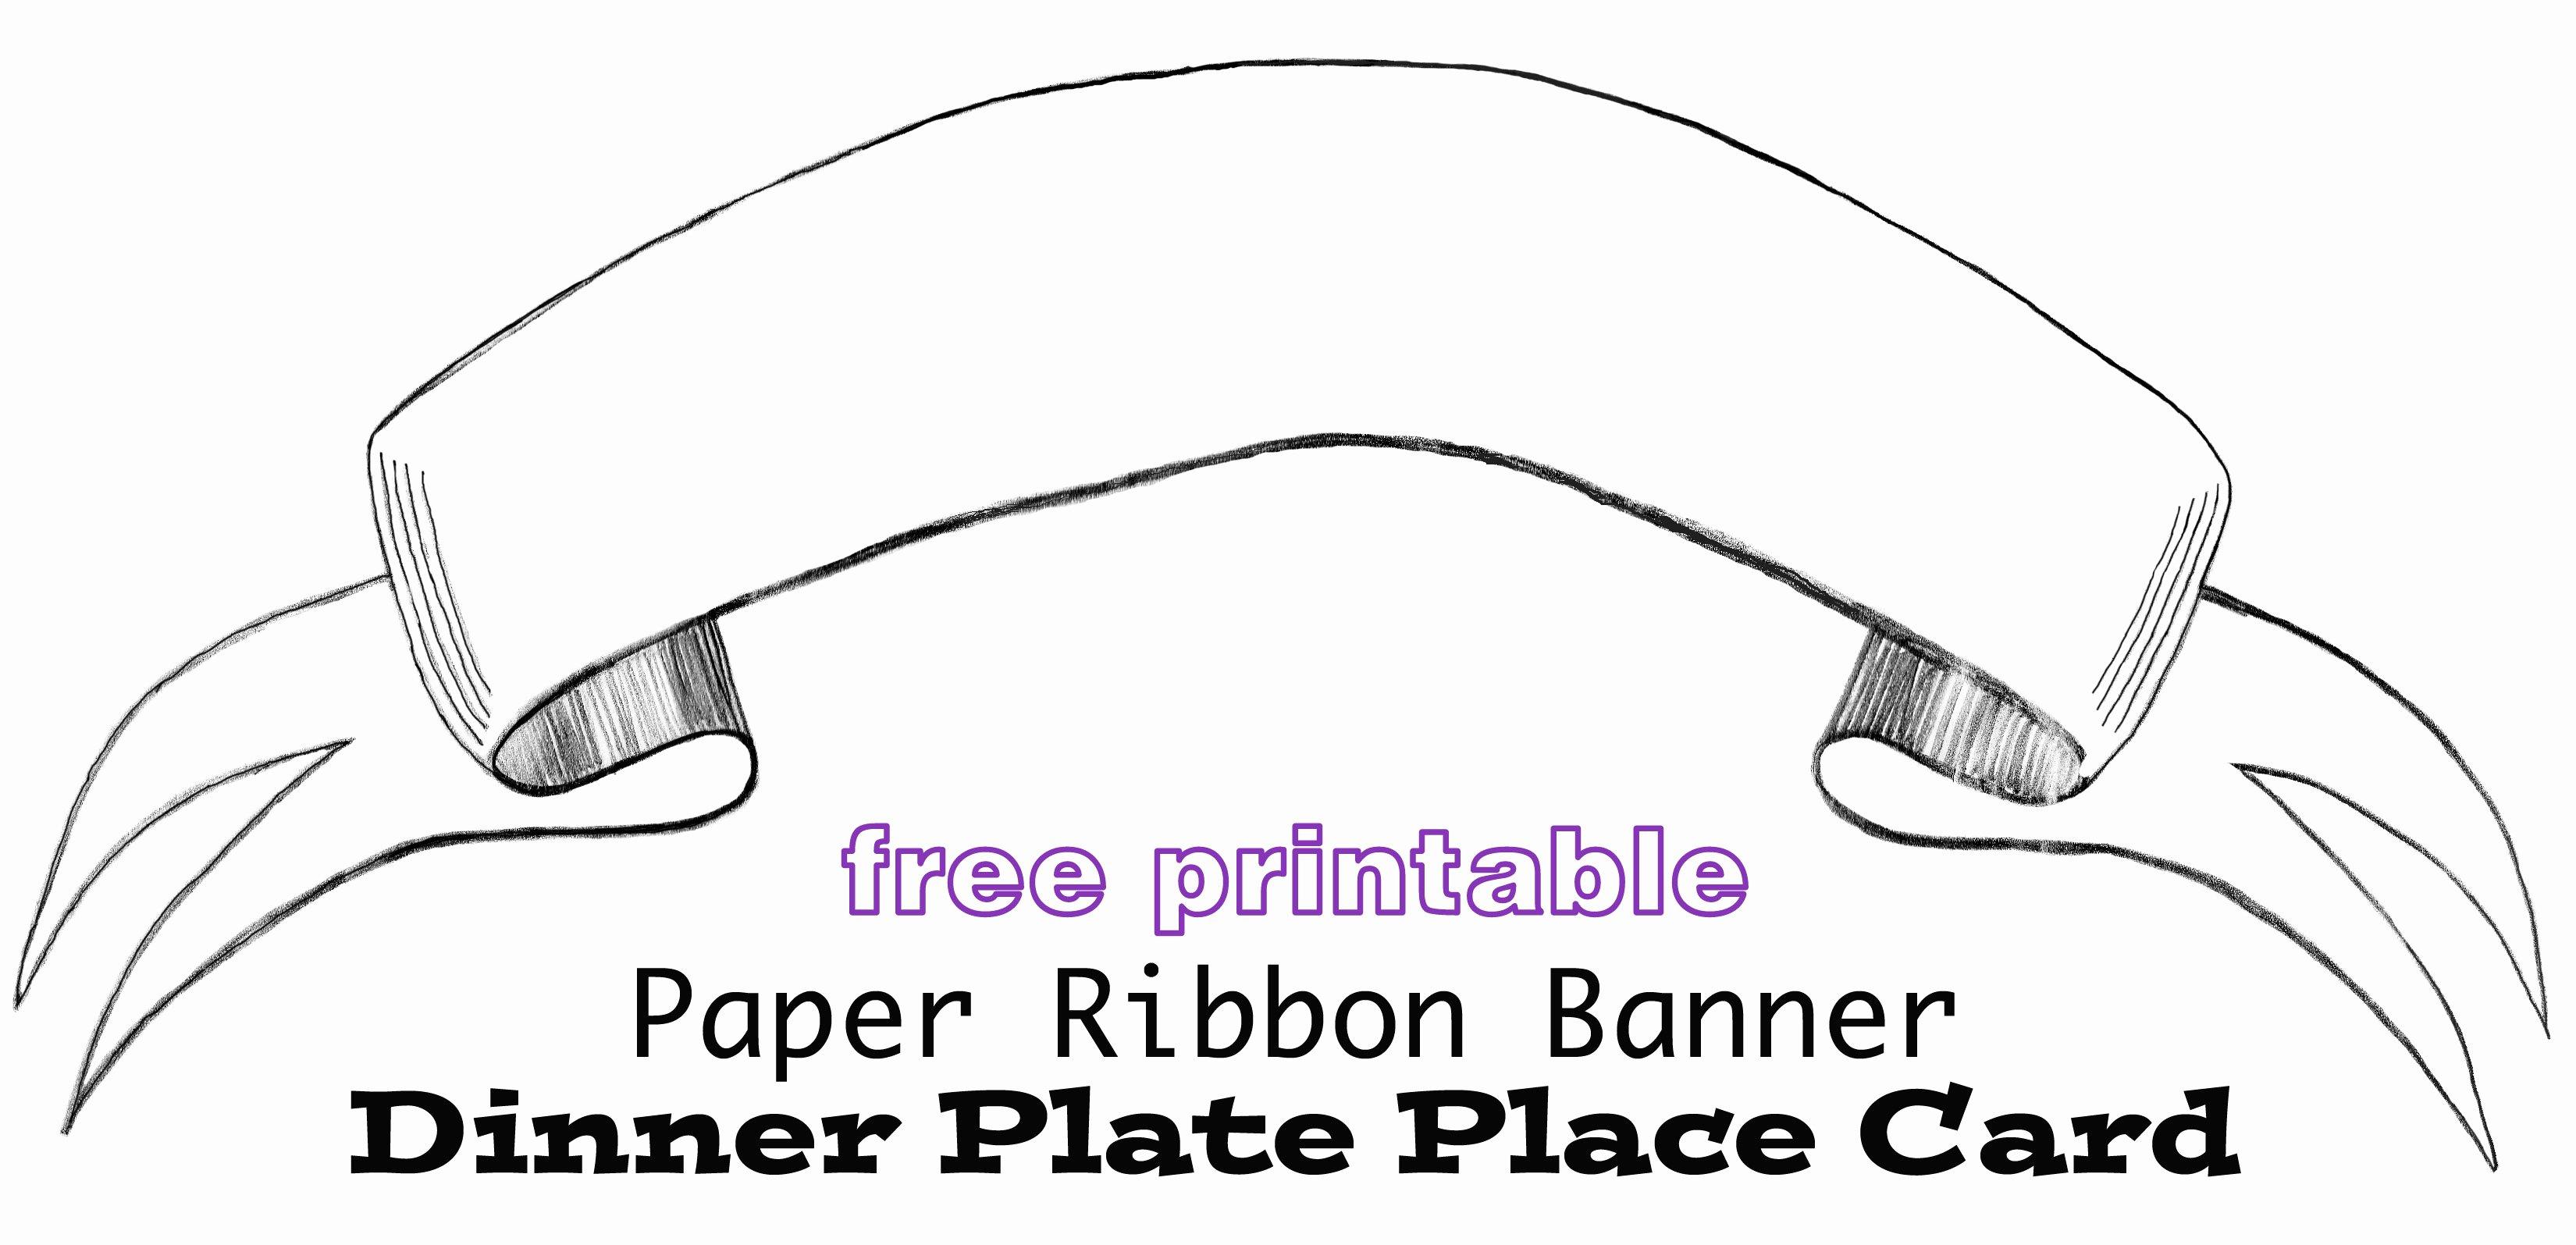 Free Printable Banner Templates Elegant Printable Paper Banner Dinner Plate Place Card